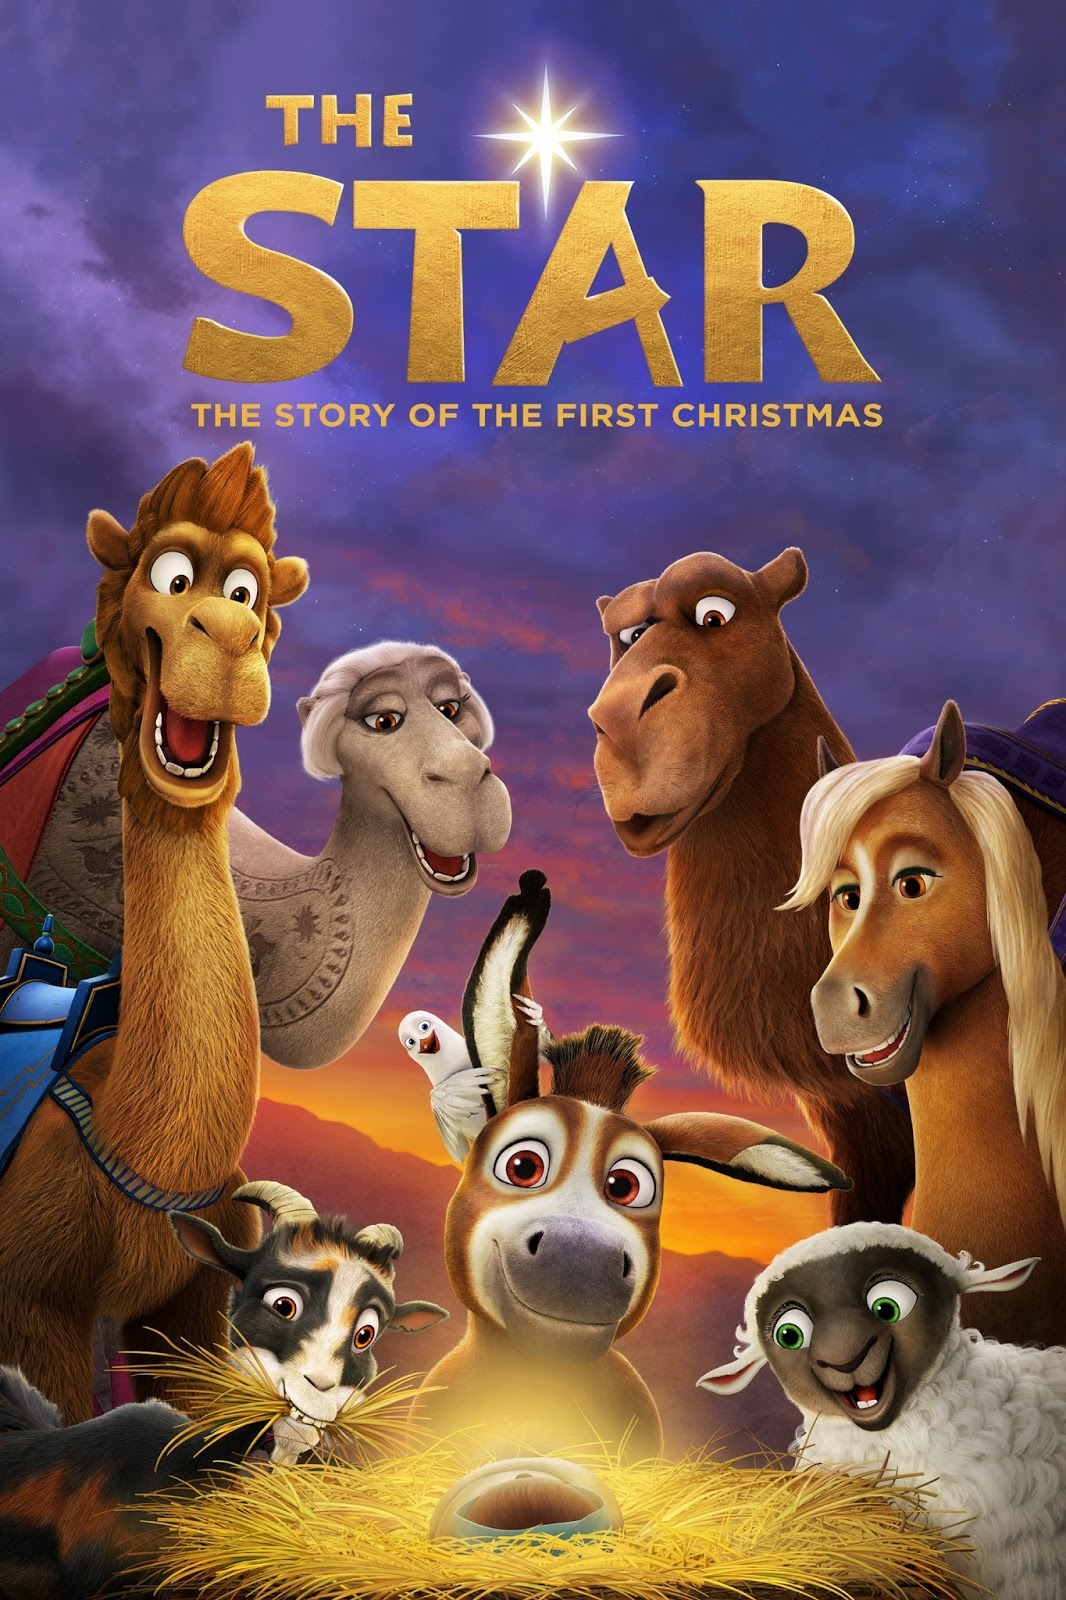 The Star [2017] [DVDR] [NTSC] [CUSTOM BD] [Latino]